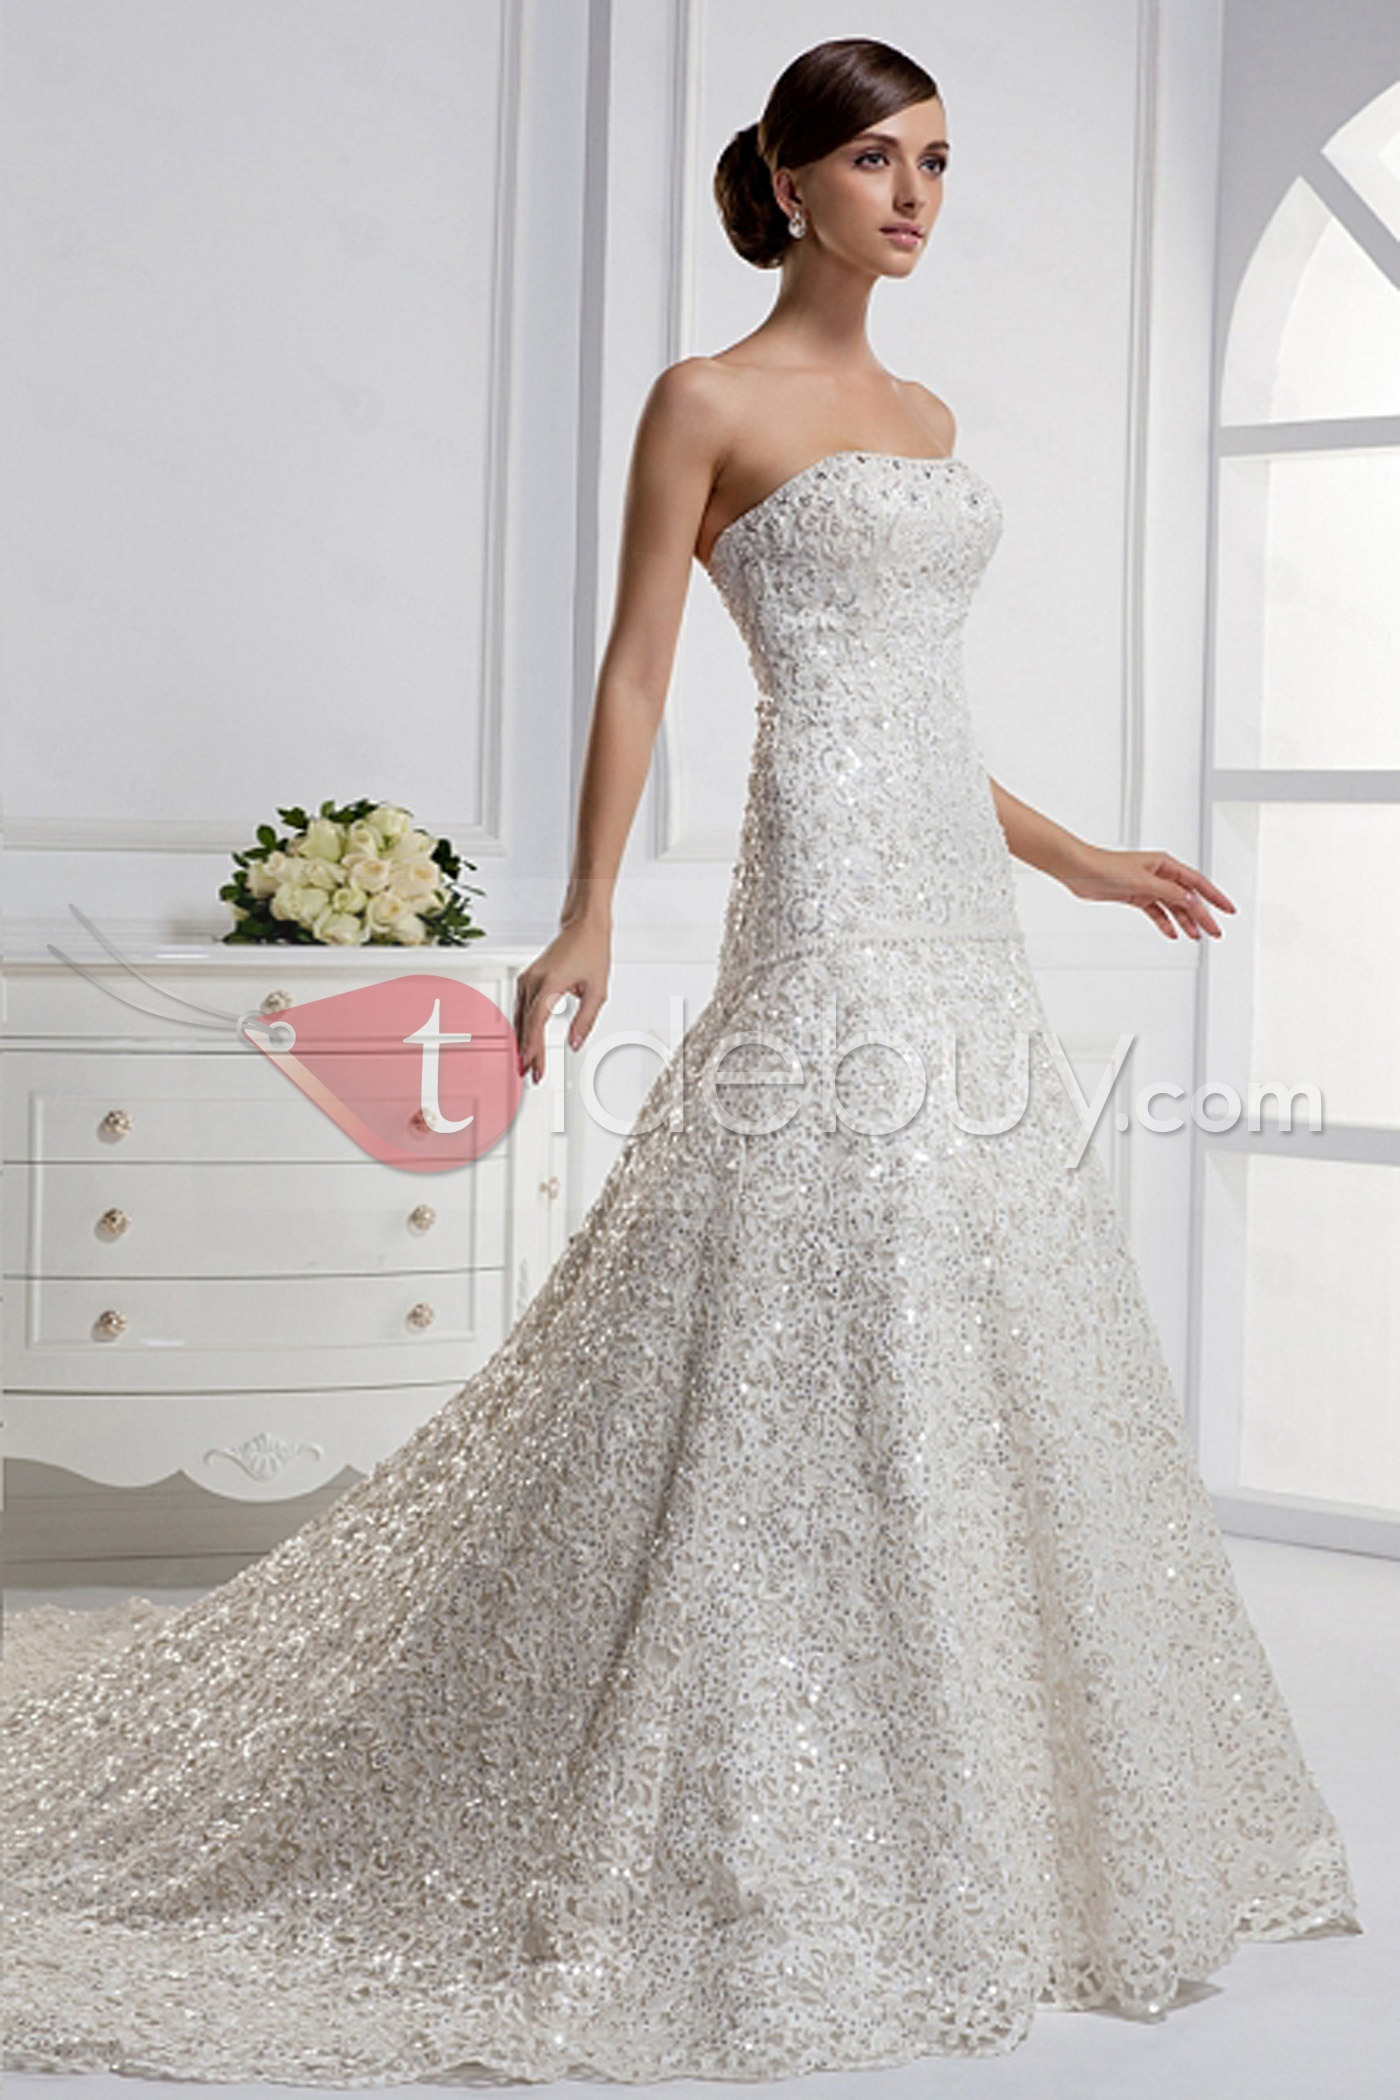 Tidebuy.com Wedding Dresses - Vosoi.com